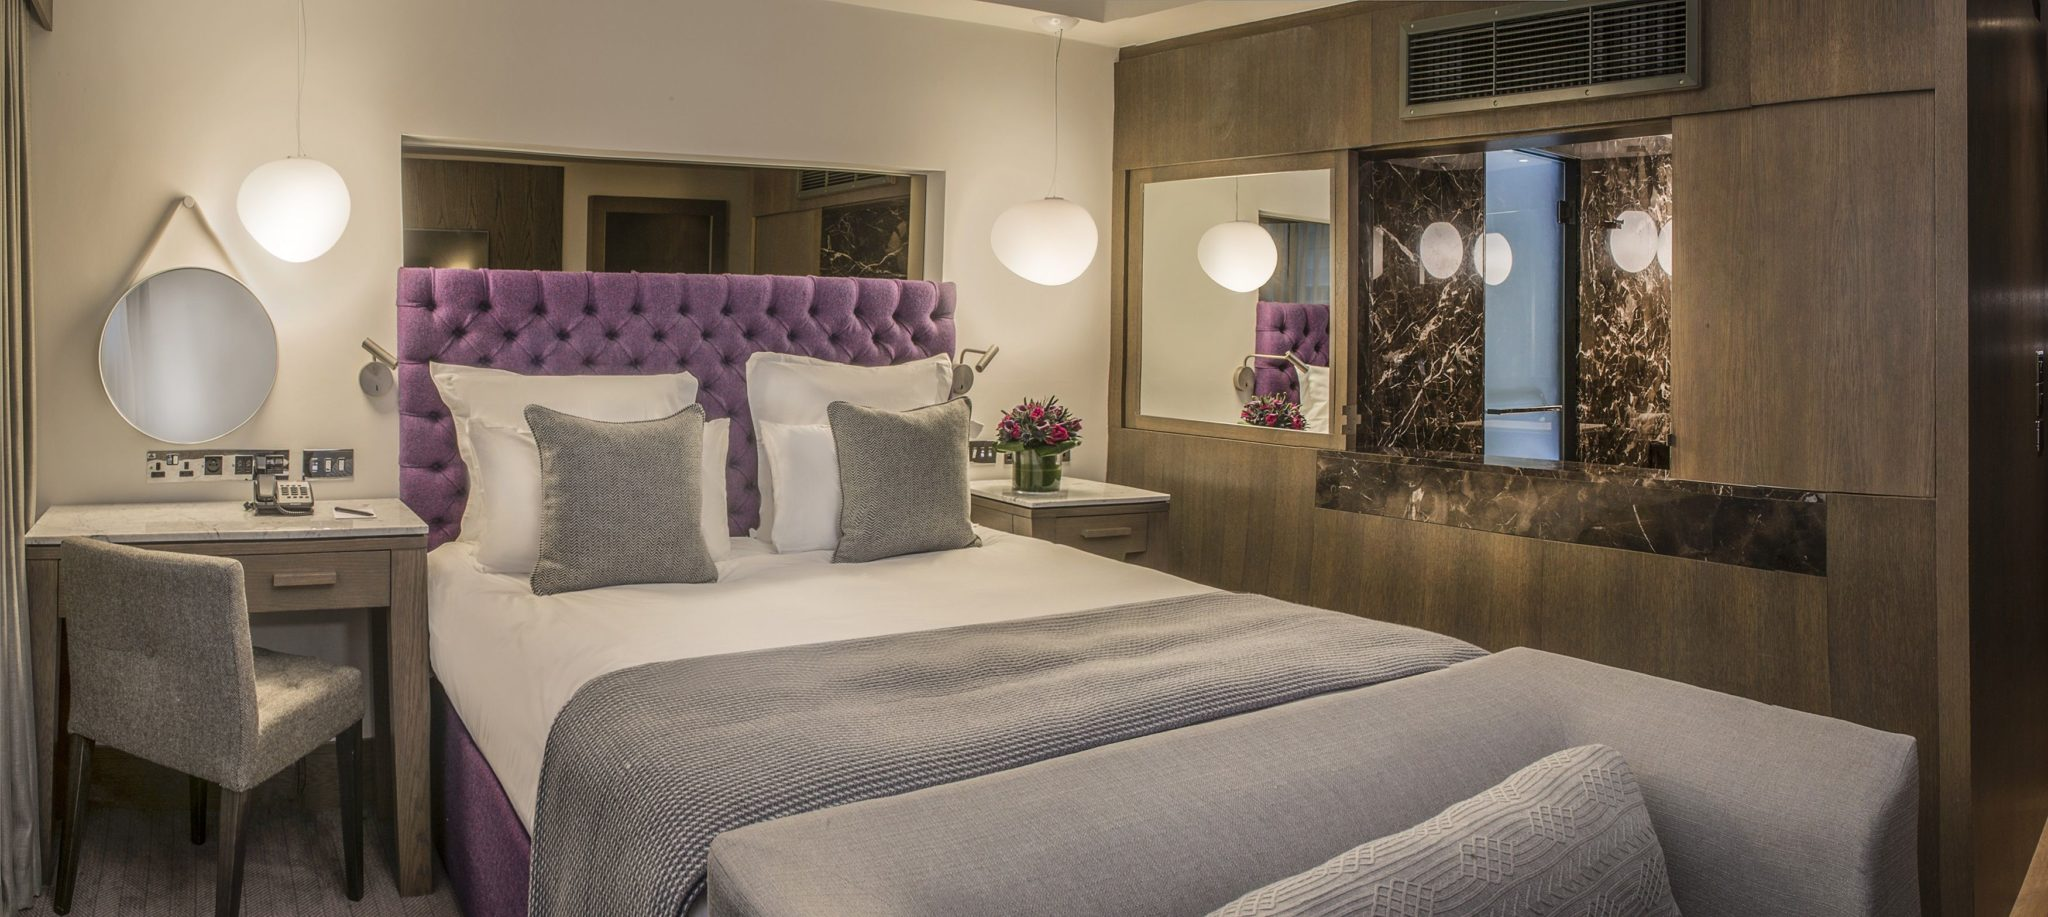 Blythswood Square superior bedroom 2018